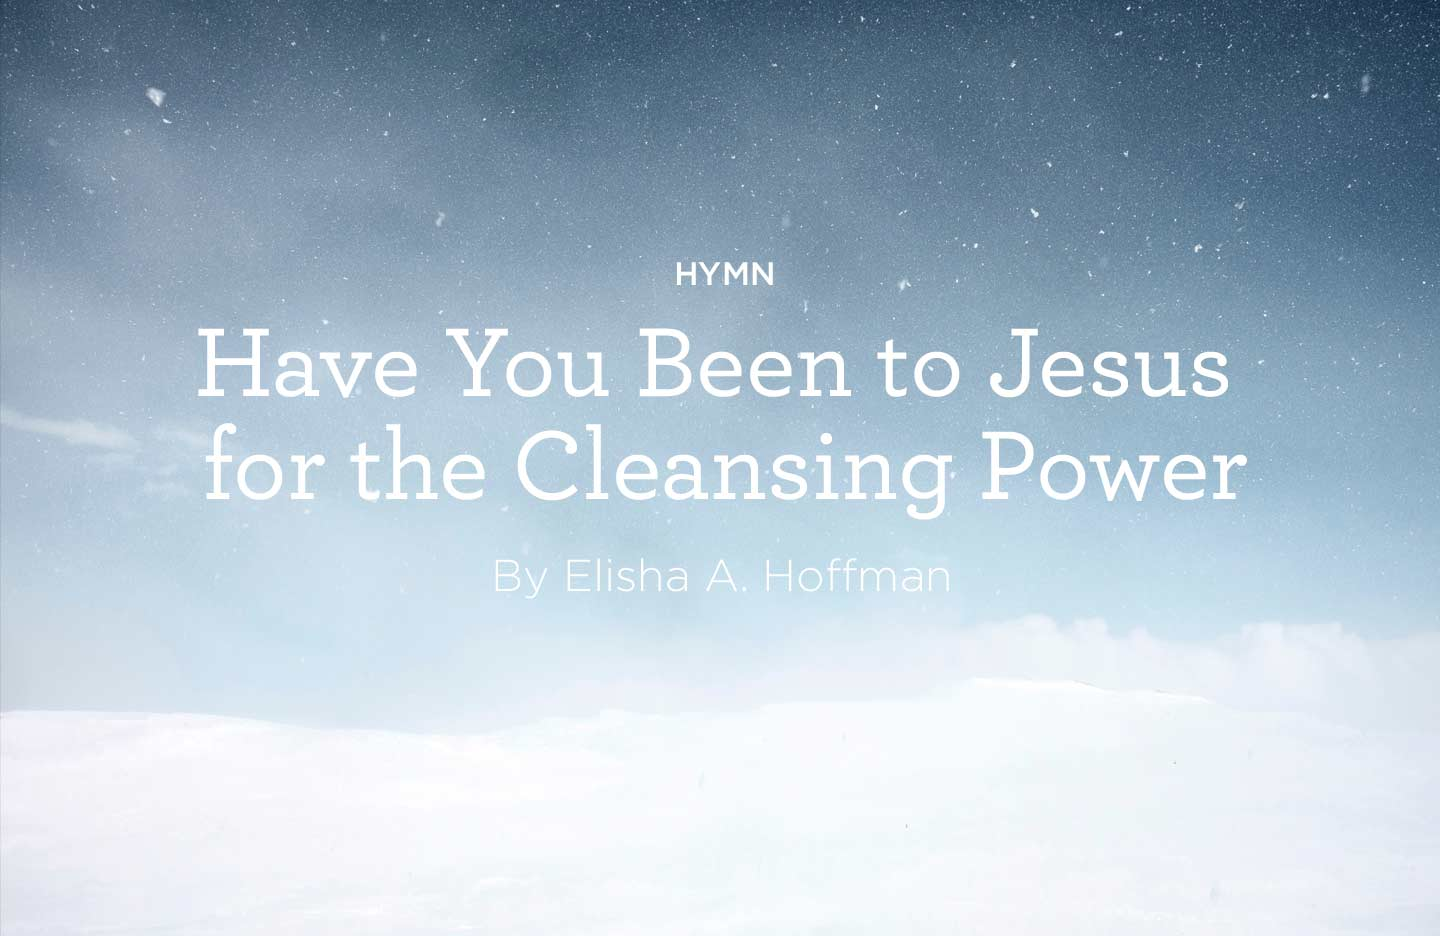 Have-You-Been-to-Jesus-for-the-Cleansing-Power